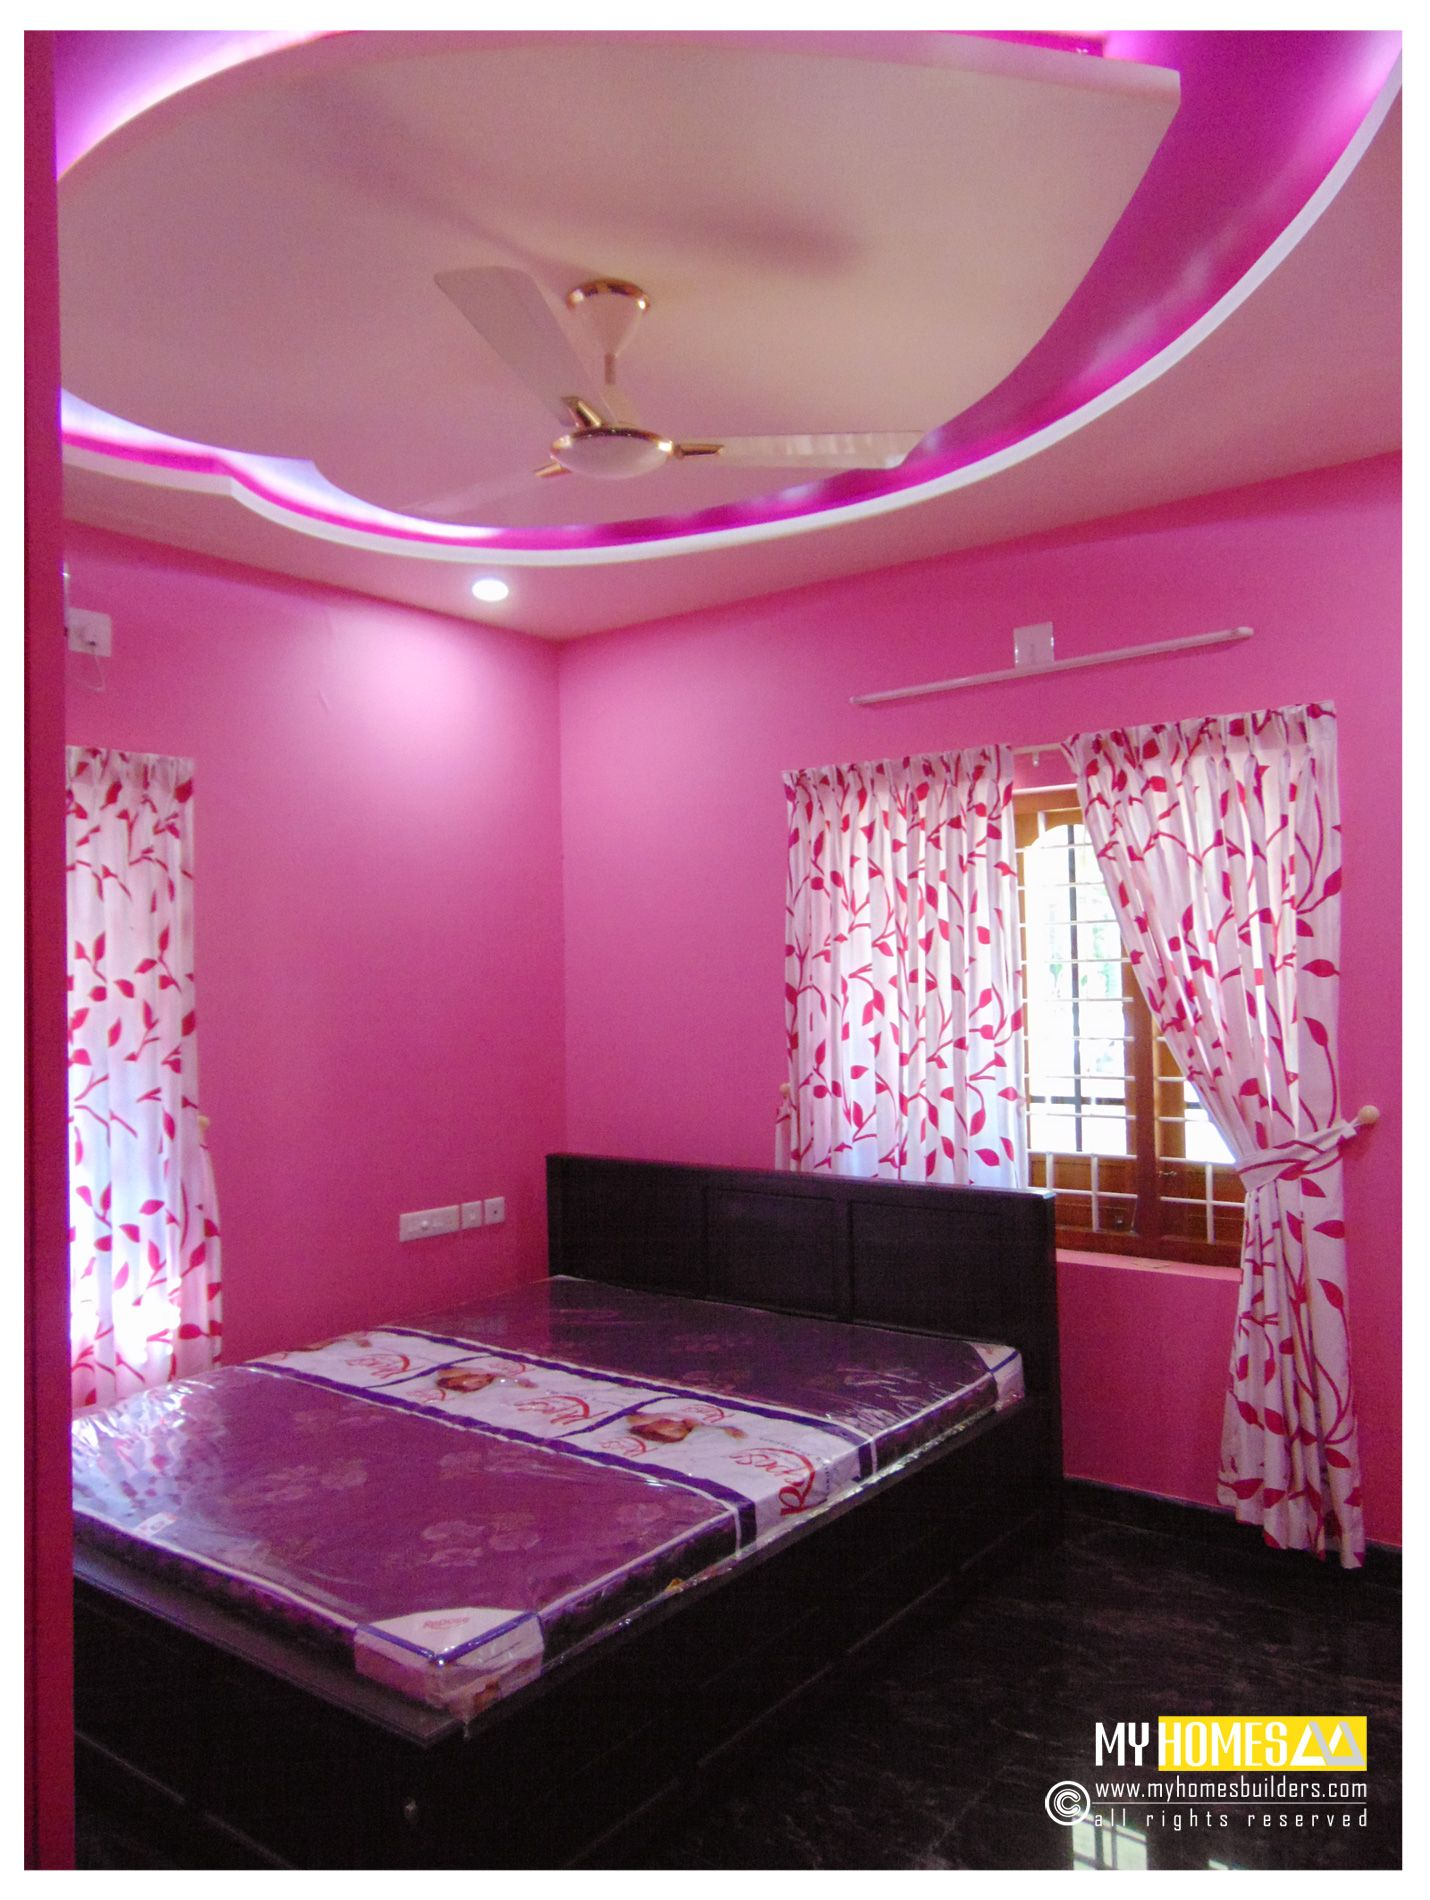 Kerala bedroom interior designs best bed room interior for Kerala home style 3 bedroom